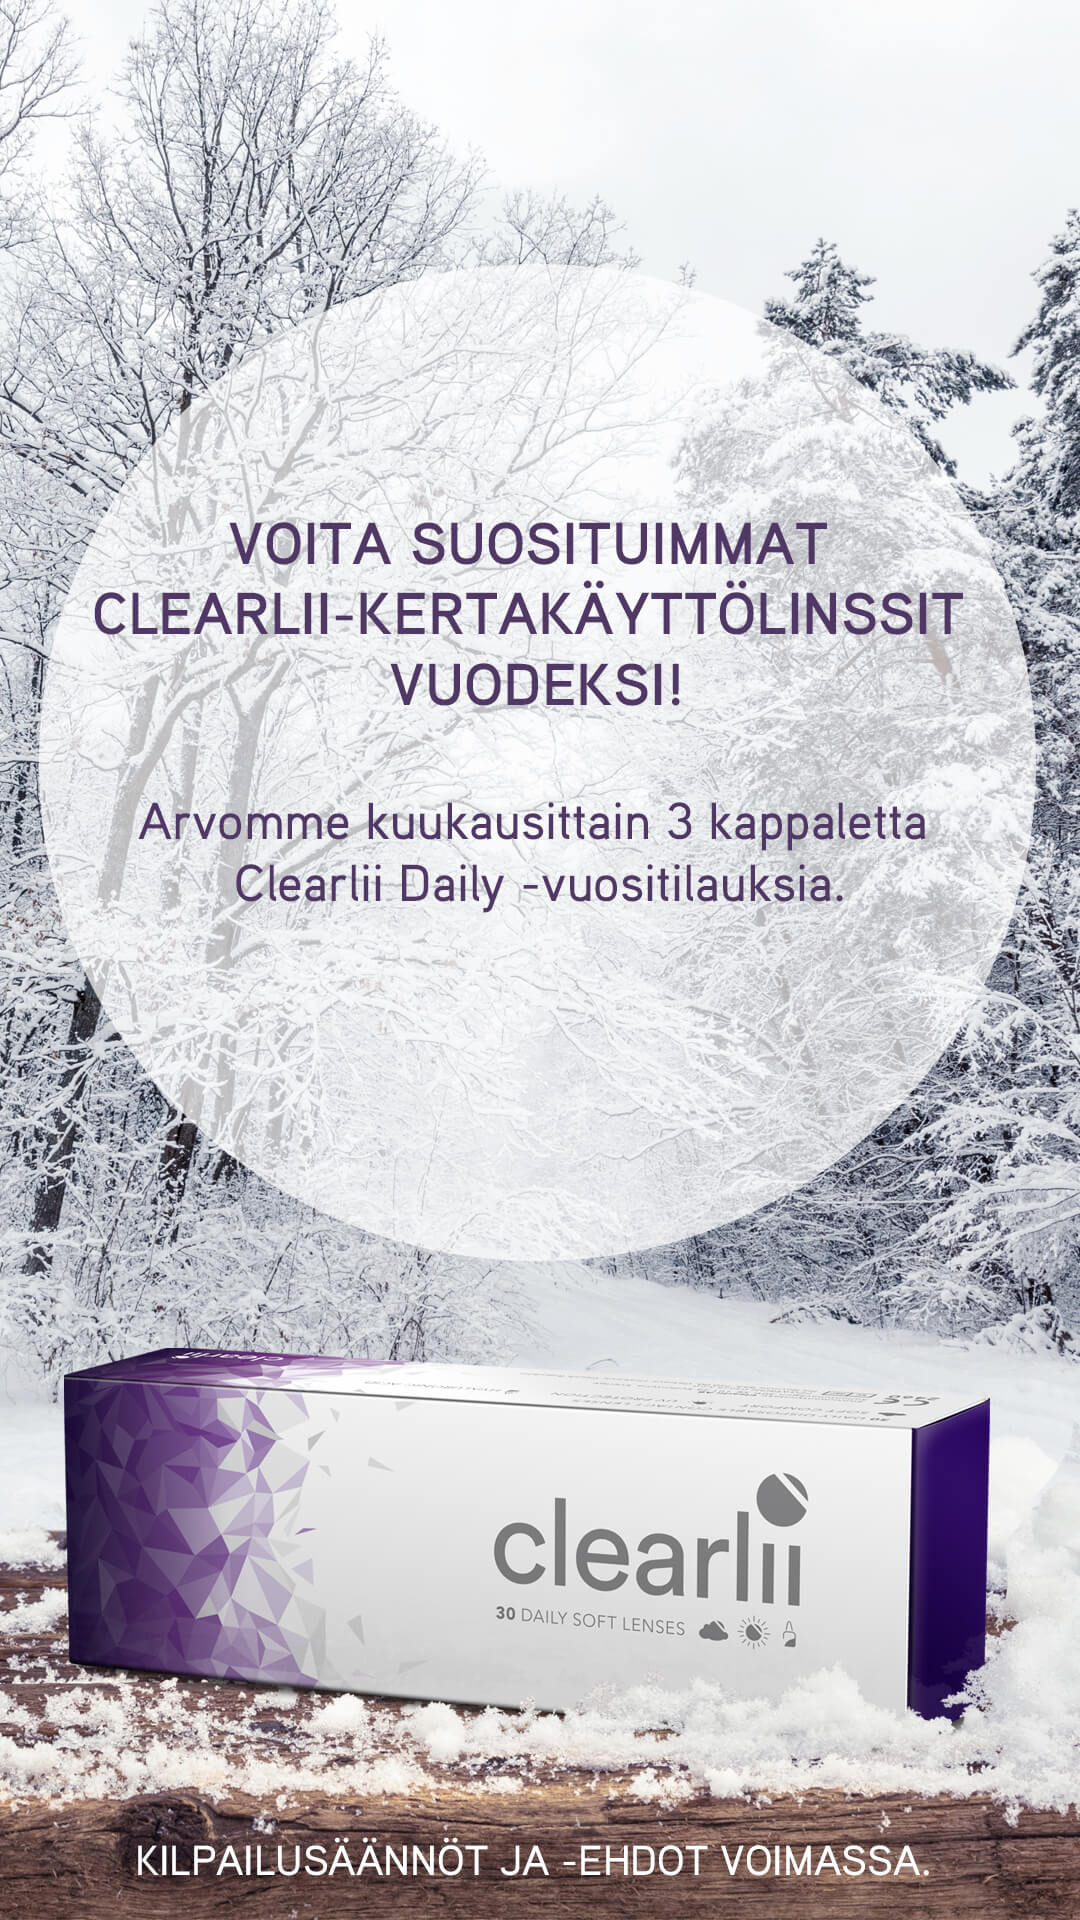 Clearlii